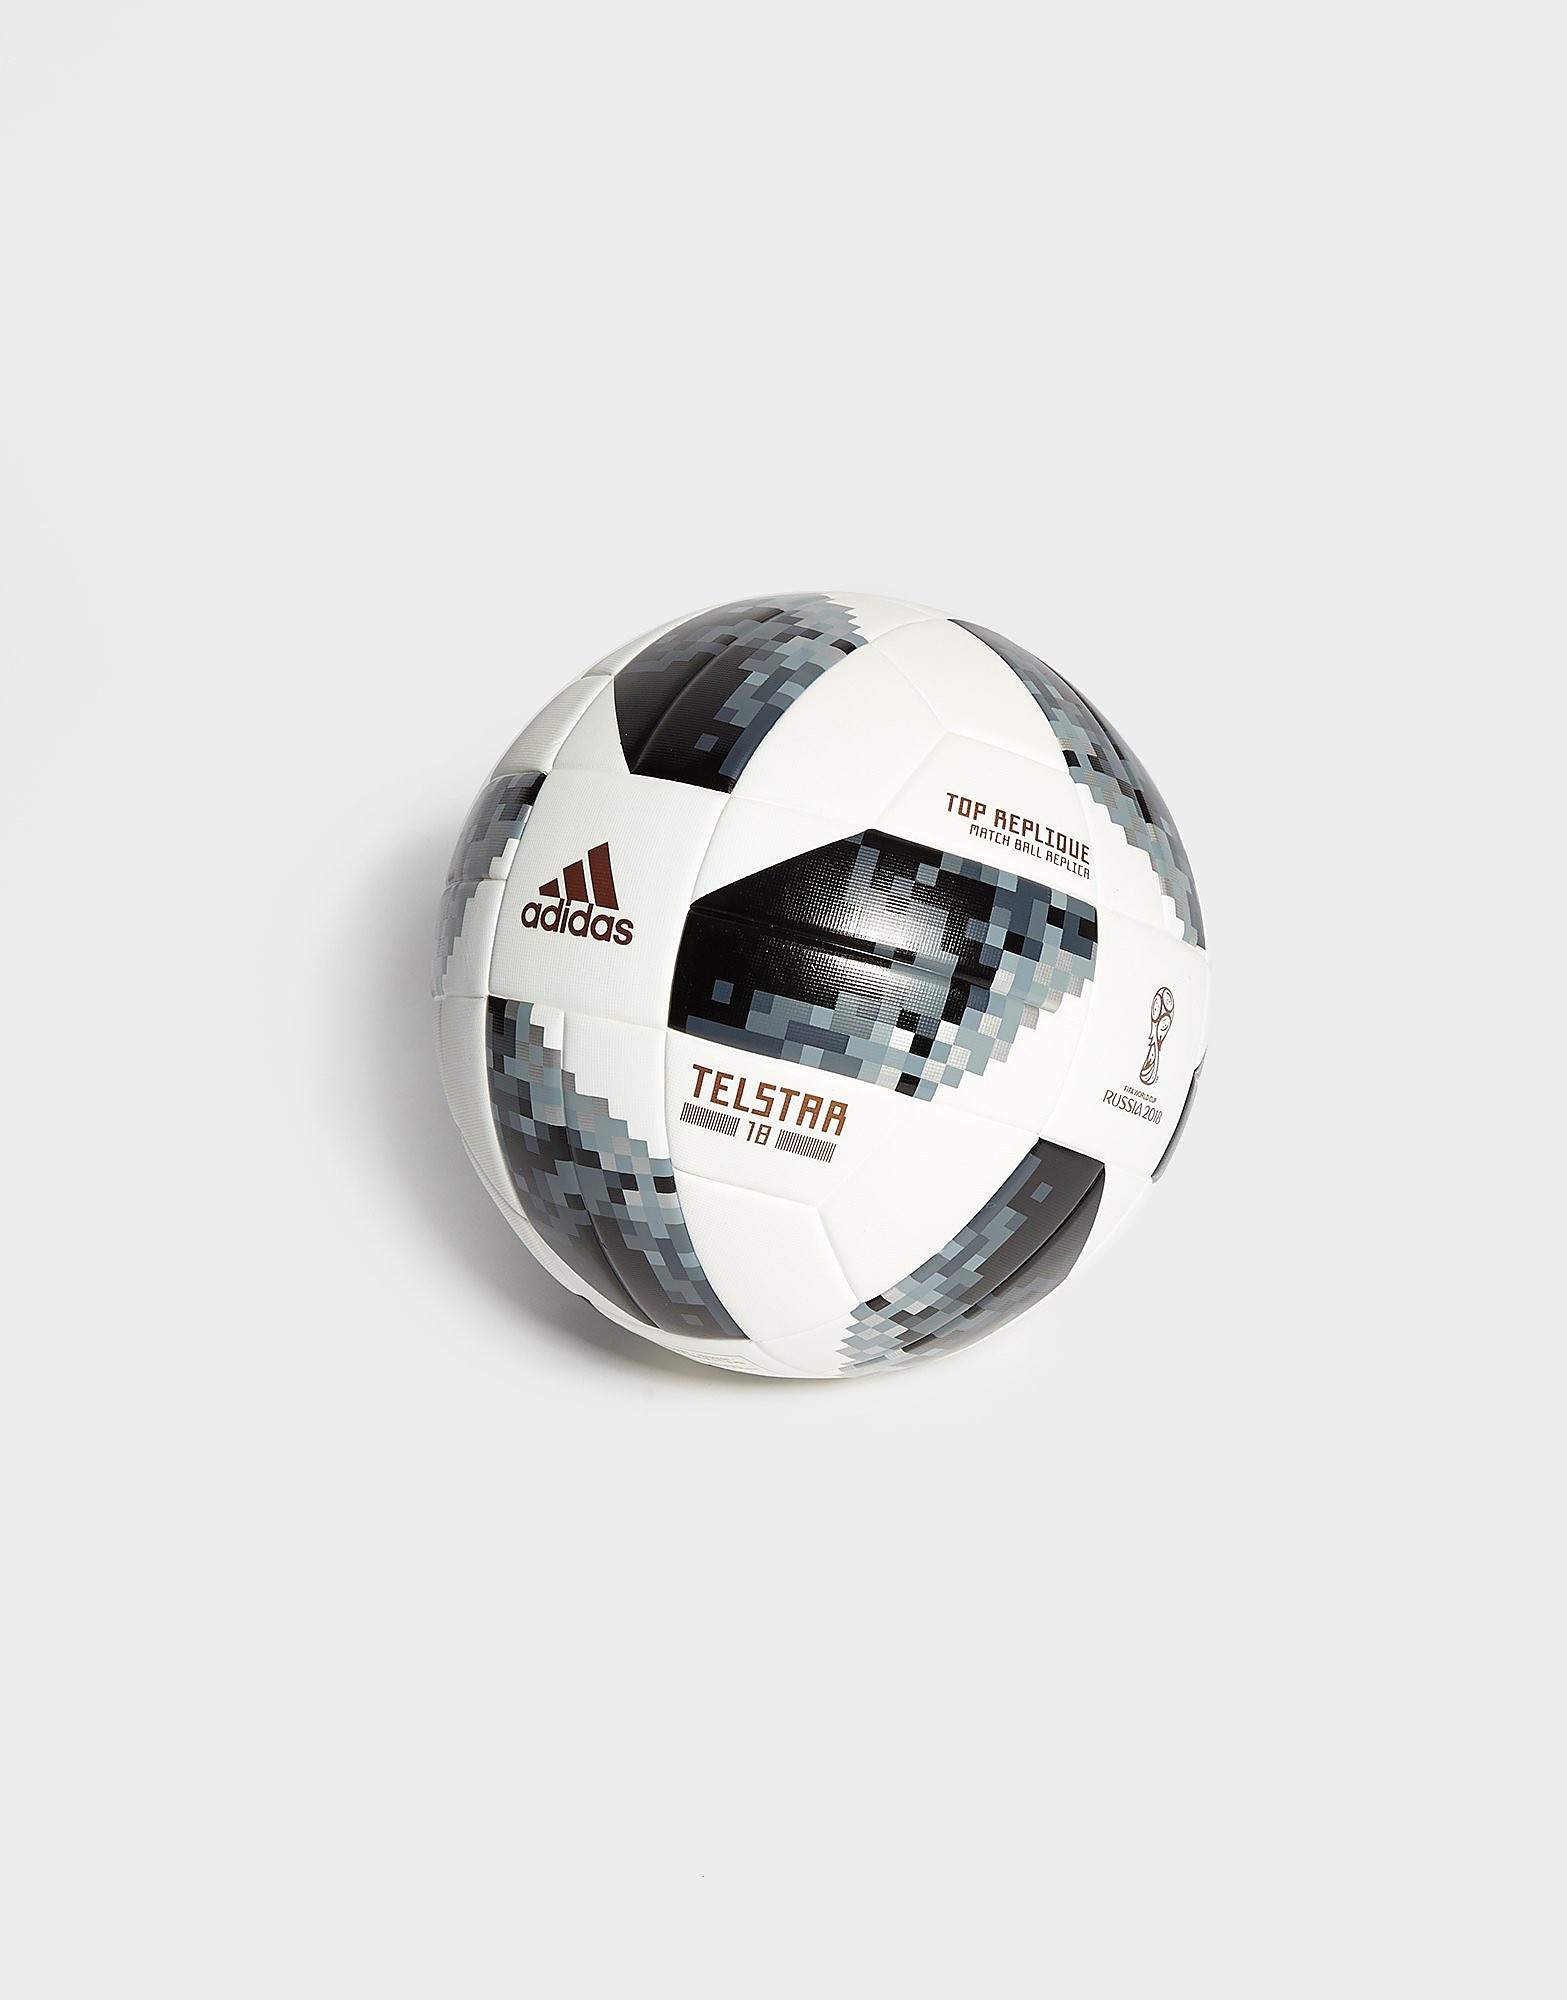 adidas Box 2018 World Cup Football